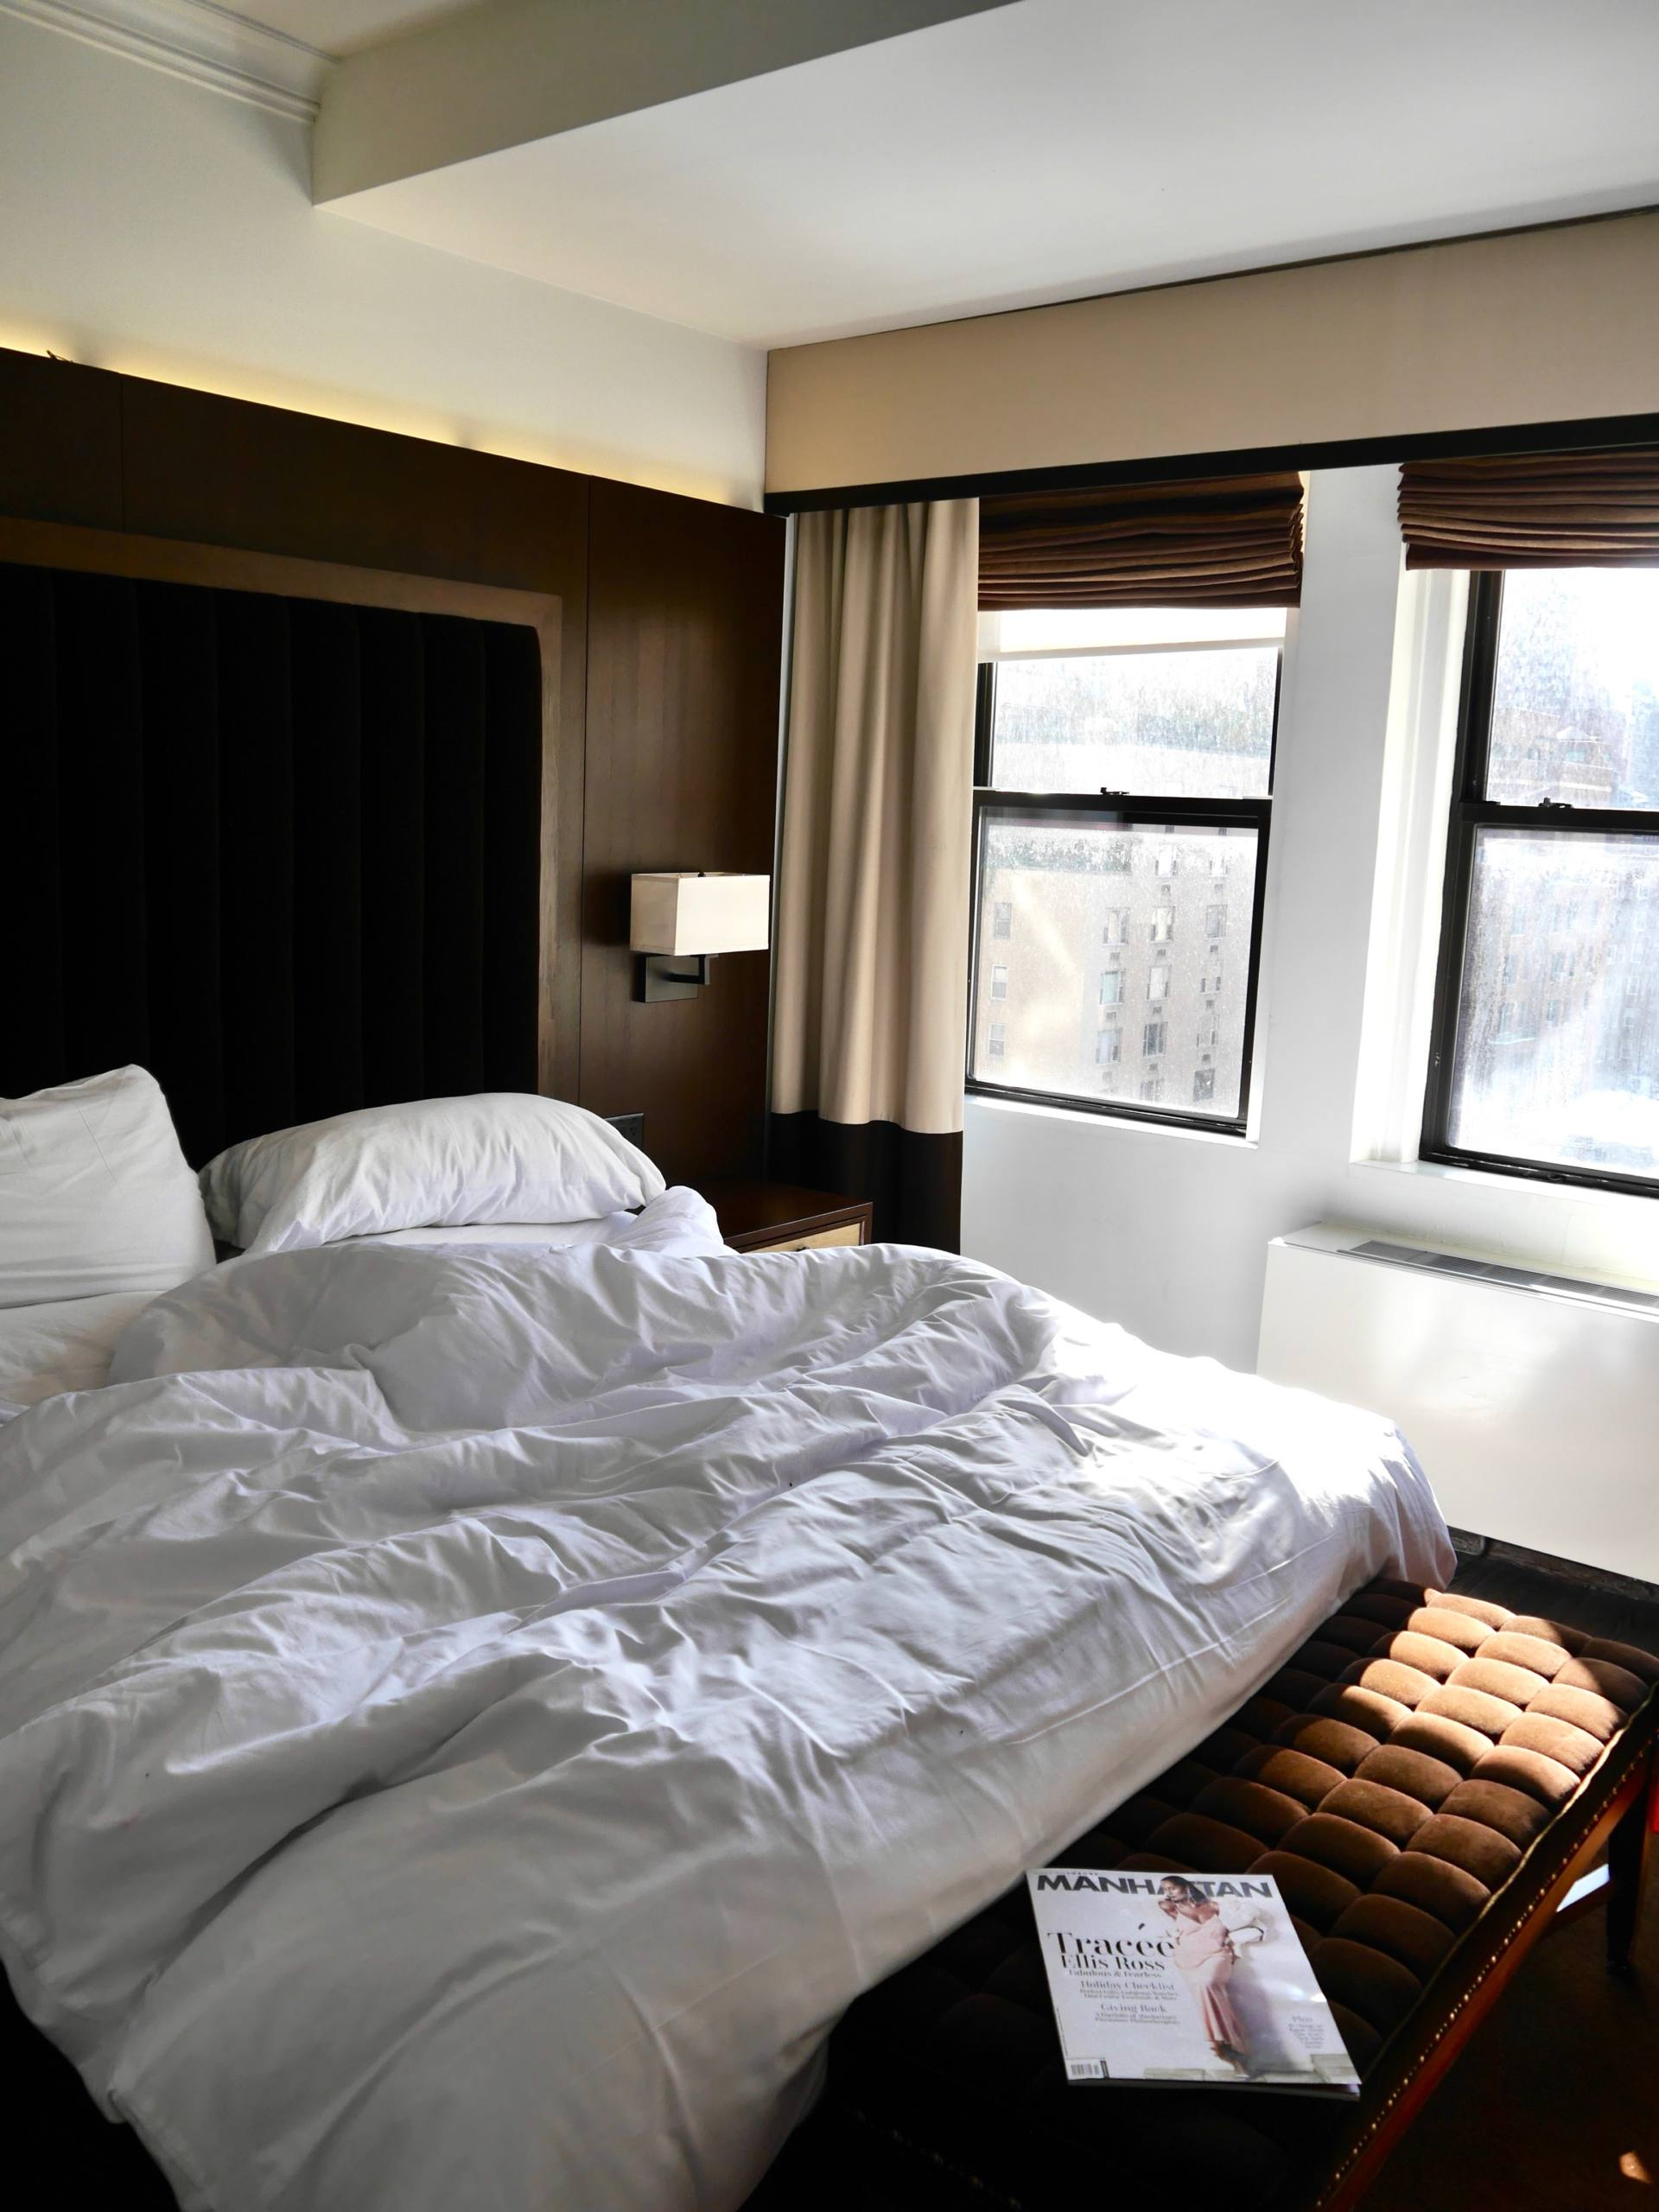 New York Hotel Hotels  Retail Price